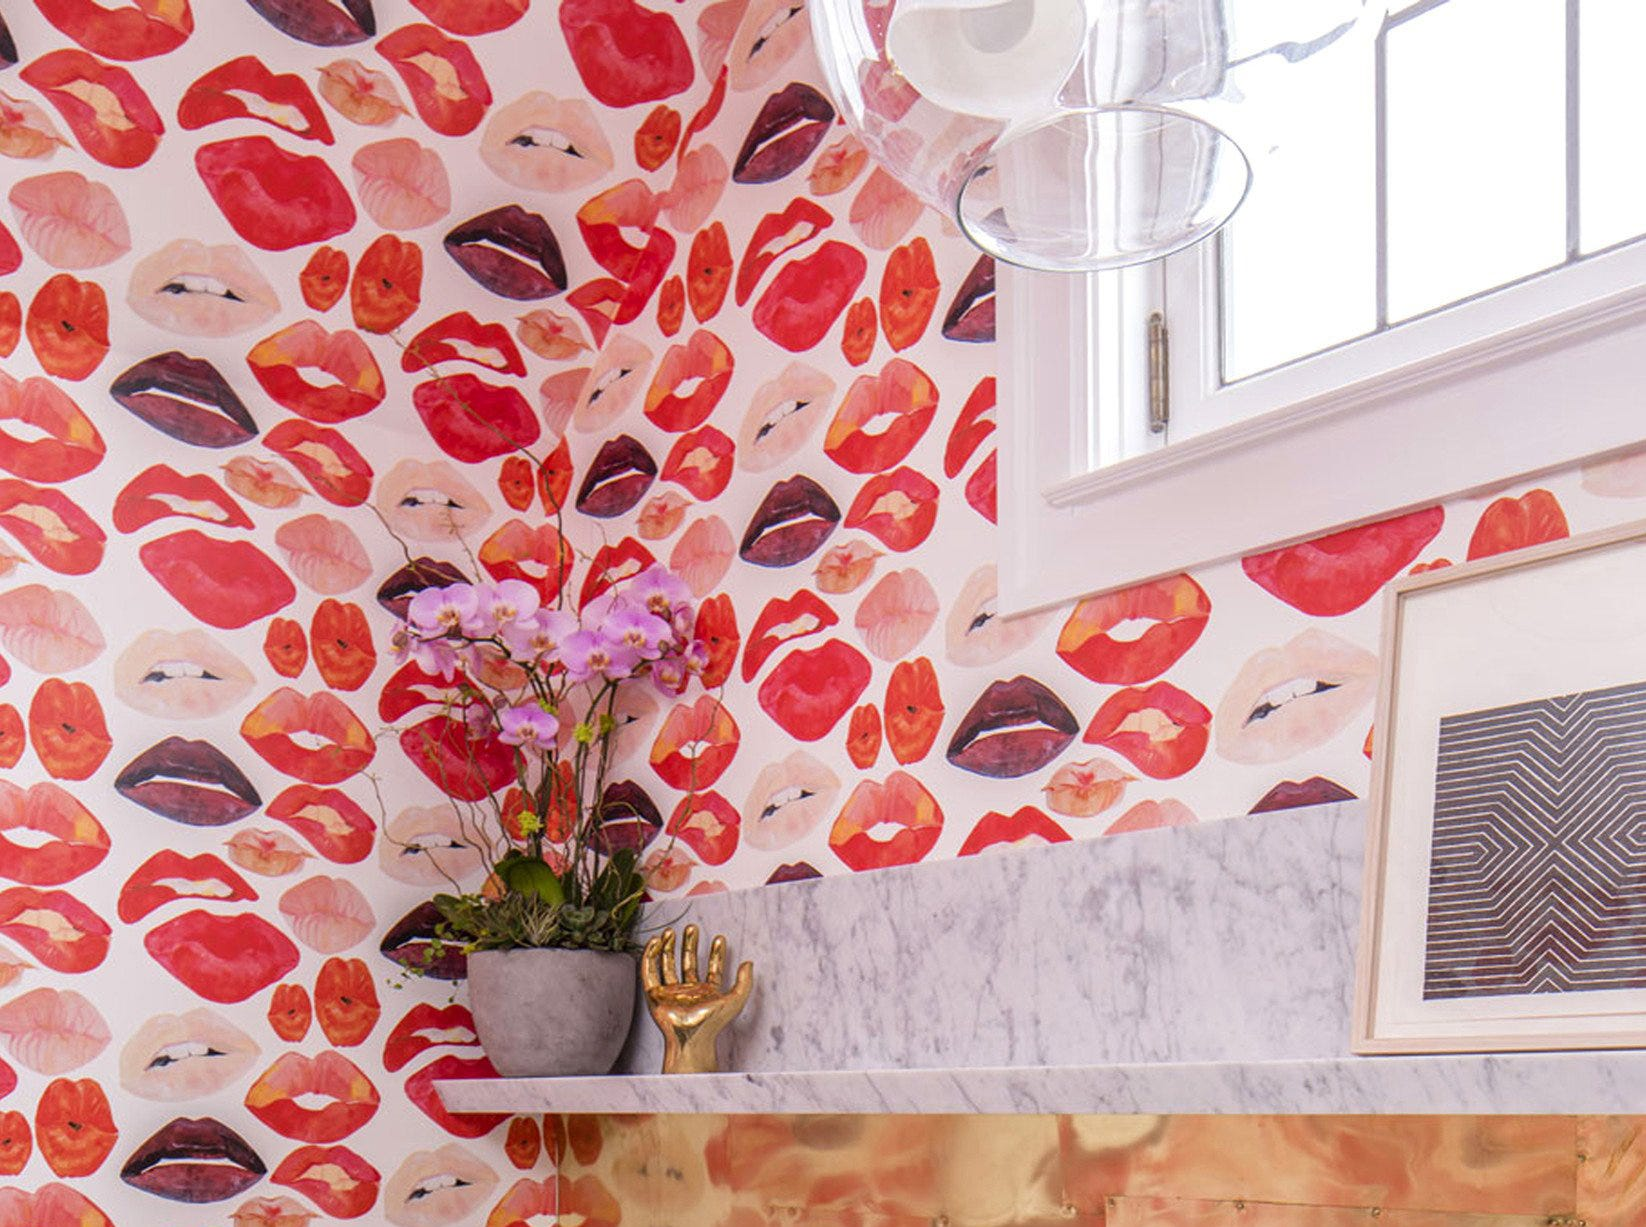 A whimsical montage of lips from artist George Venson for Voutsa brightened a powder room for the San Francisco Decorator Showcase last year, on the walls and all the way up the ceiling.